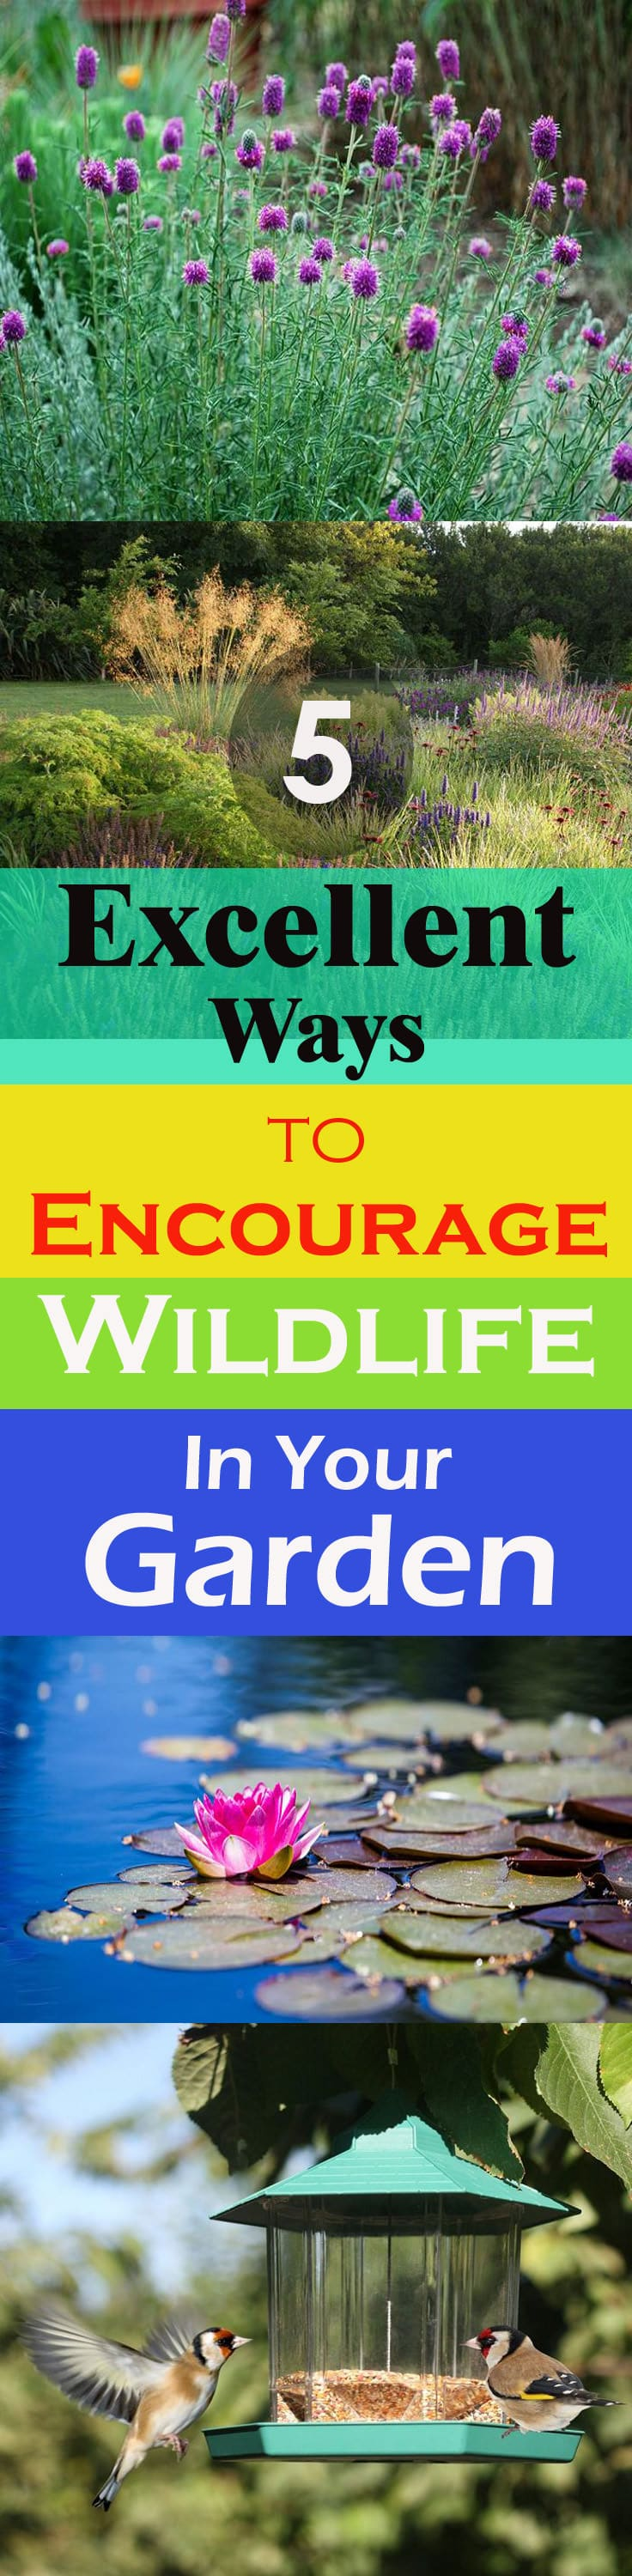 Attracting wildlife into your garden can make it more lively, it will also improve the overall health of your garden. Here are the 5 ways to do this!